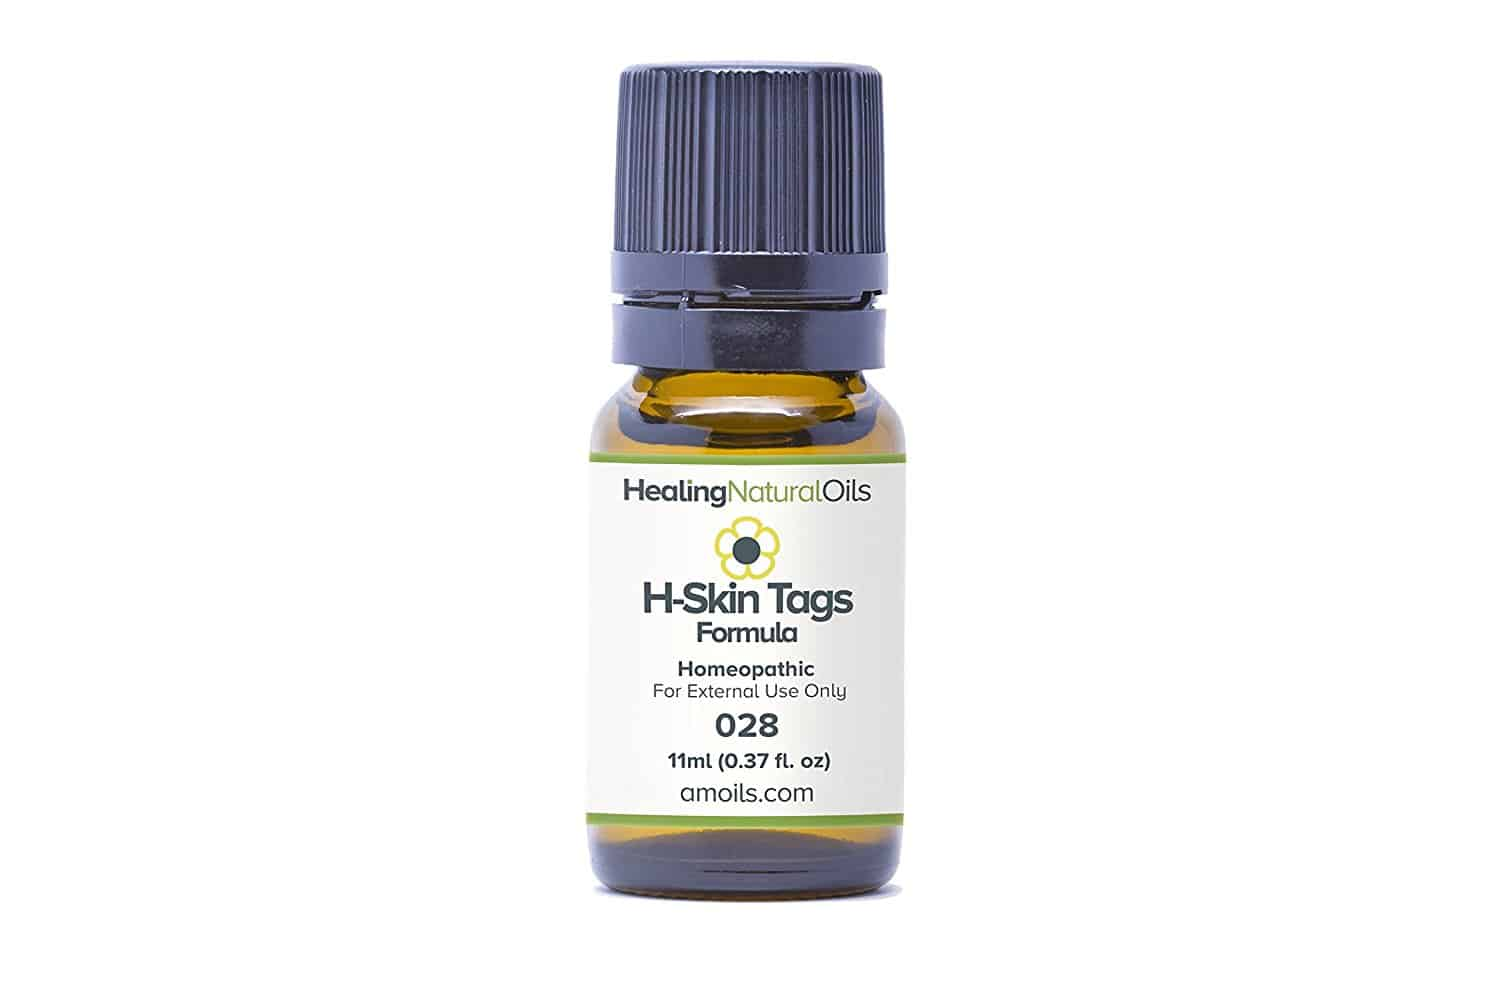 H-Skin Tags Homeopathc Remedy